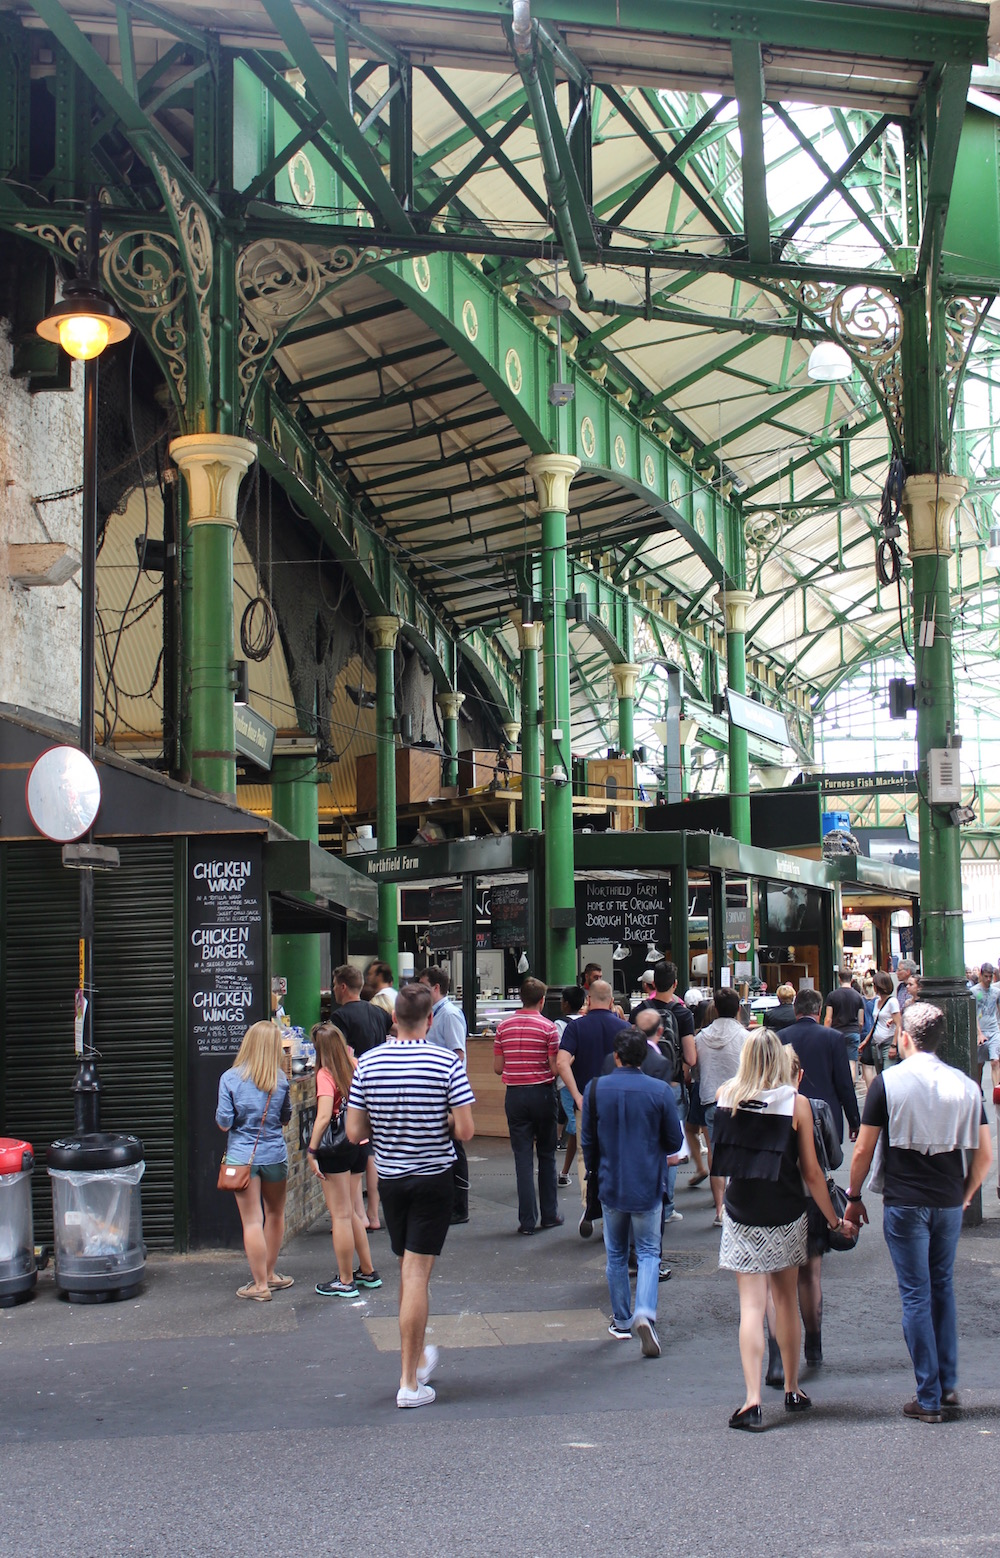 Borough Market interior